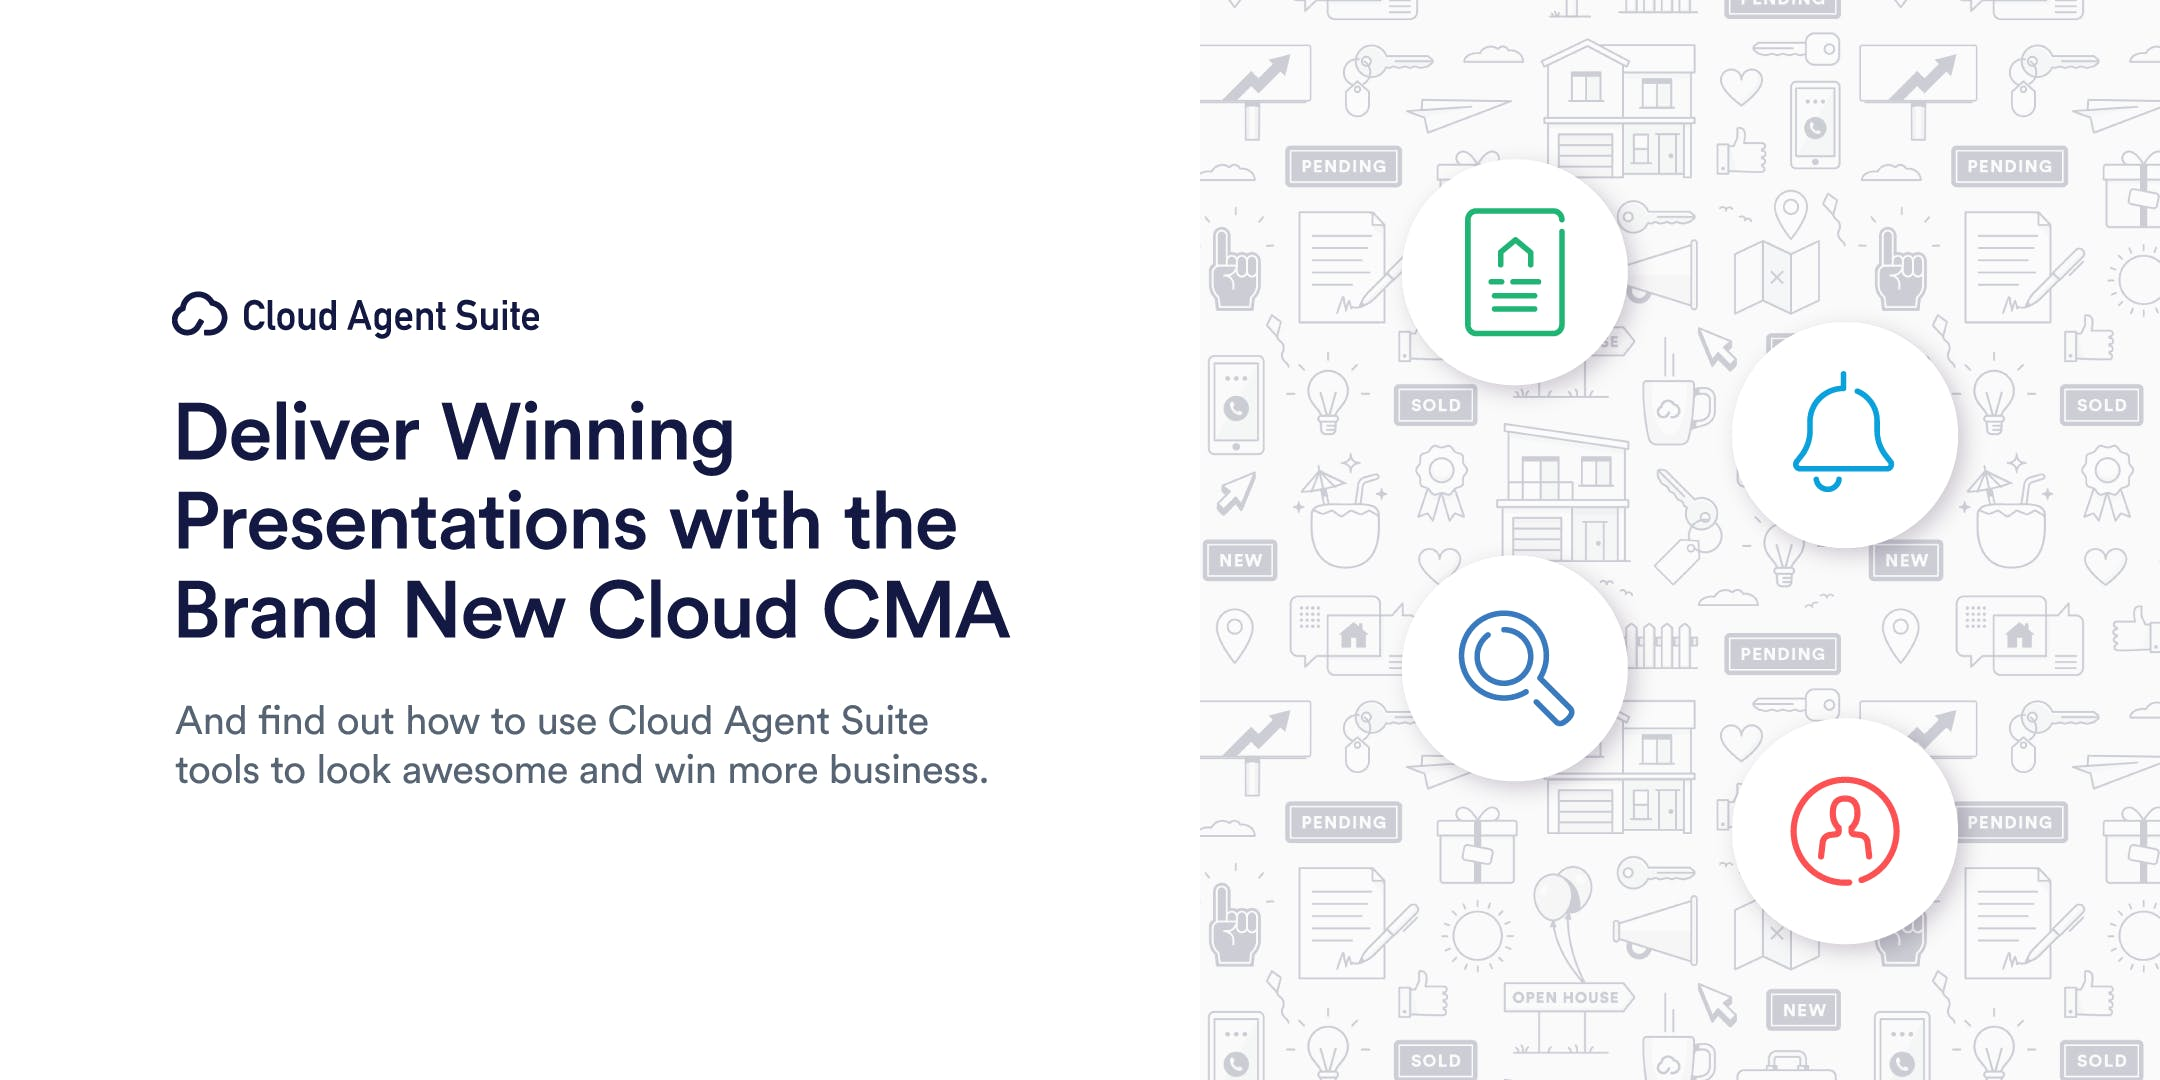 Deliver Winning Presentations with the Brand New Cloud CMA & Cloud Agent Suite